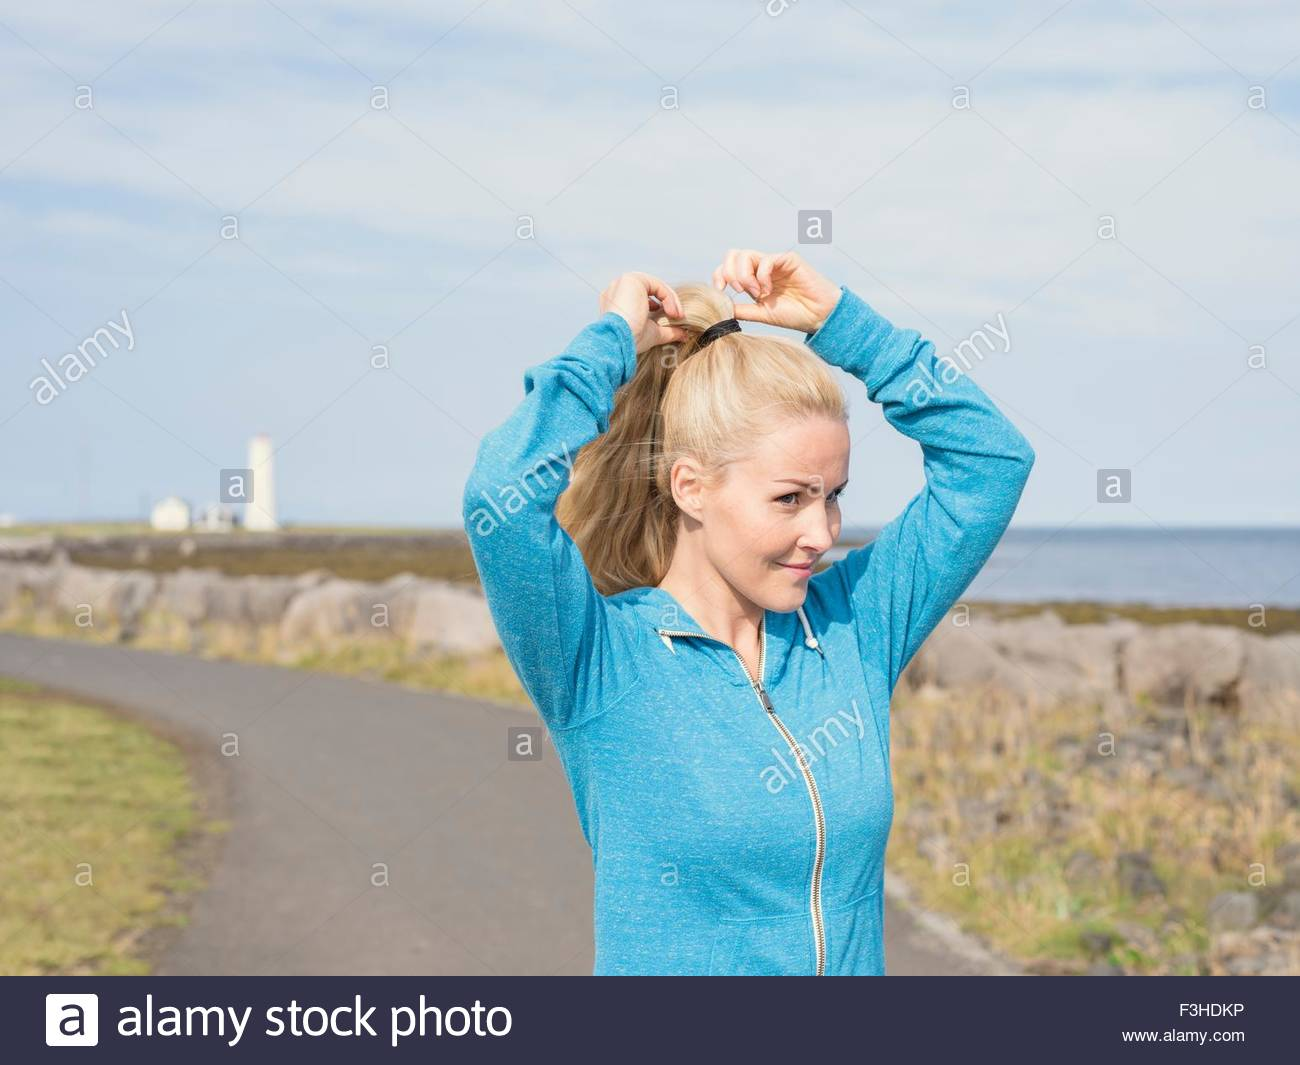 Female runner tying pony tail at coast - Stock Image